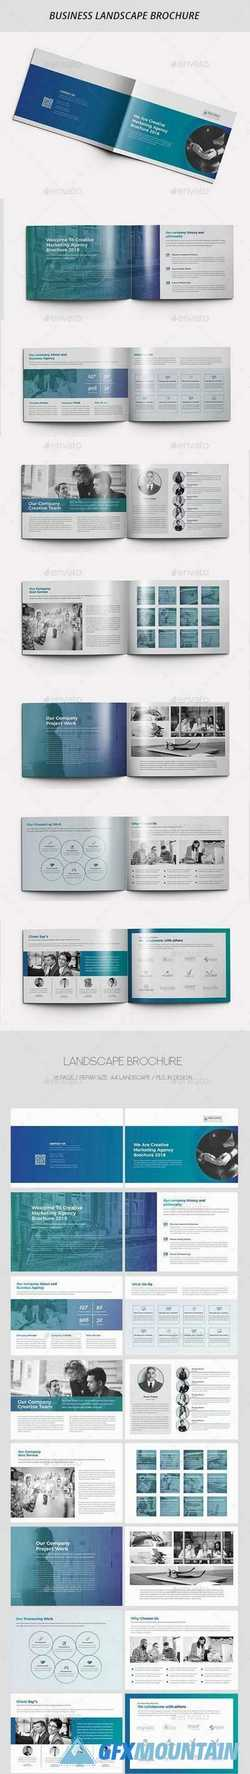 Brochure Indesign Template 21241657